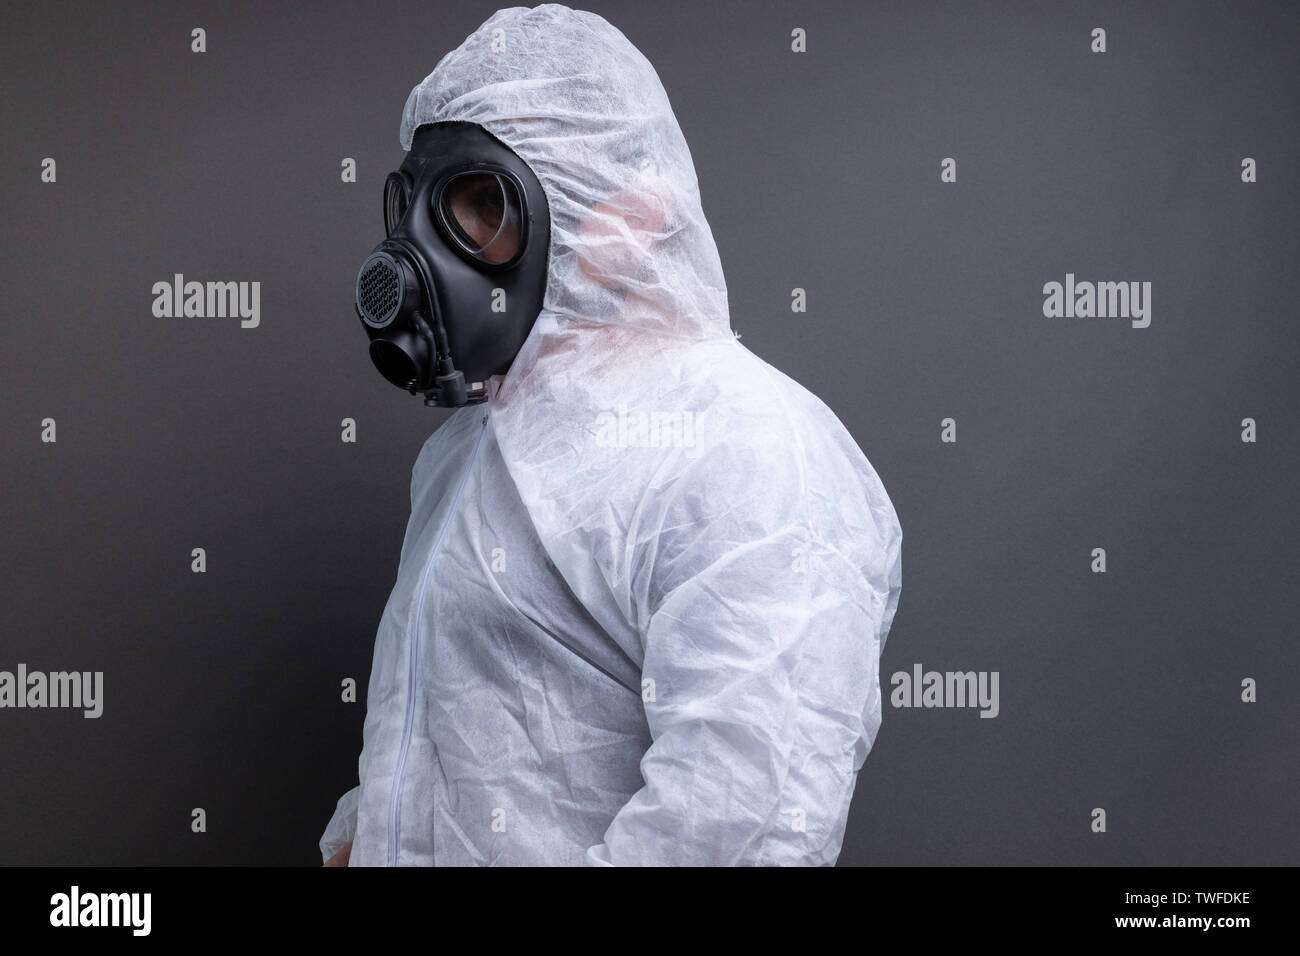 side view of man with gas mask in protective overall suit against grey background - Stock Image